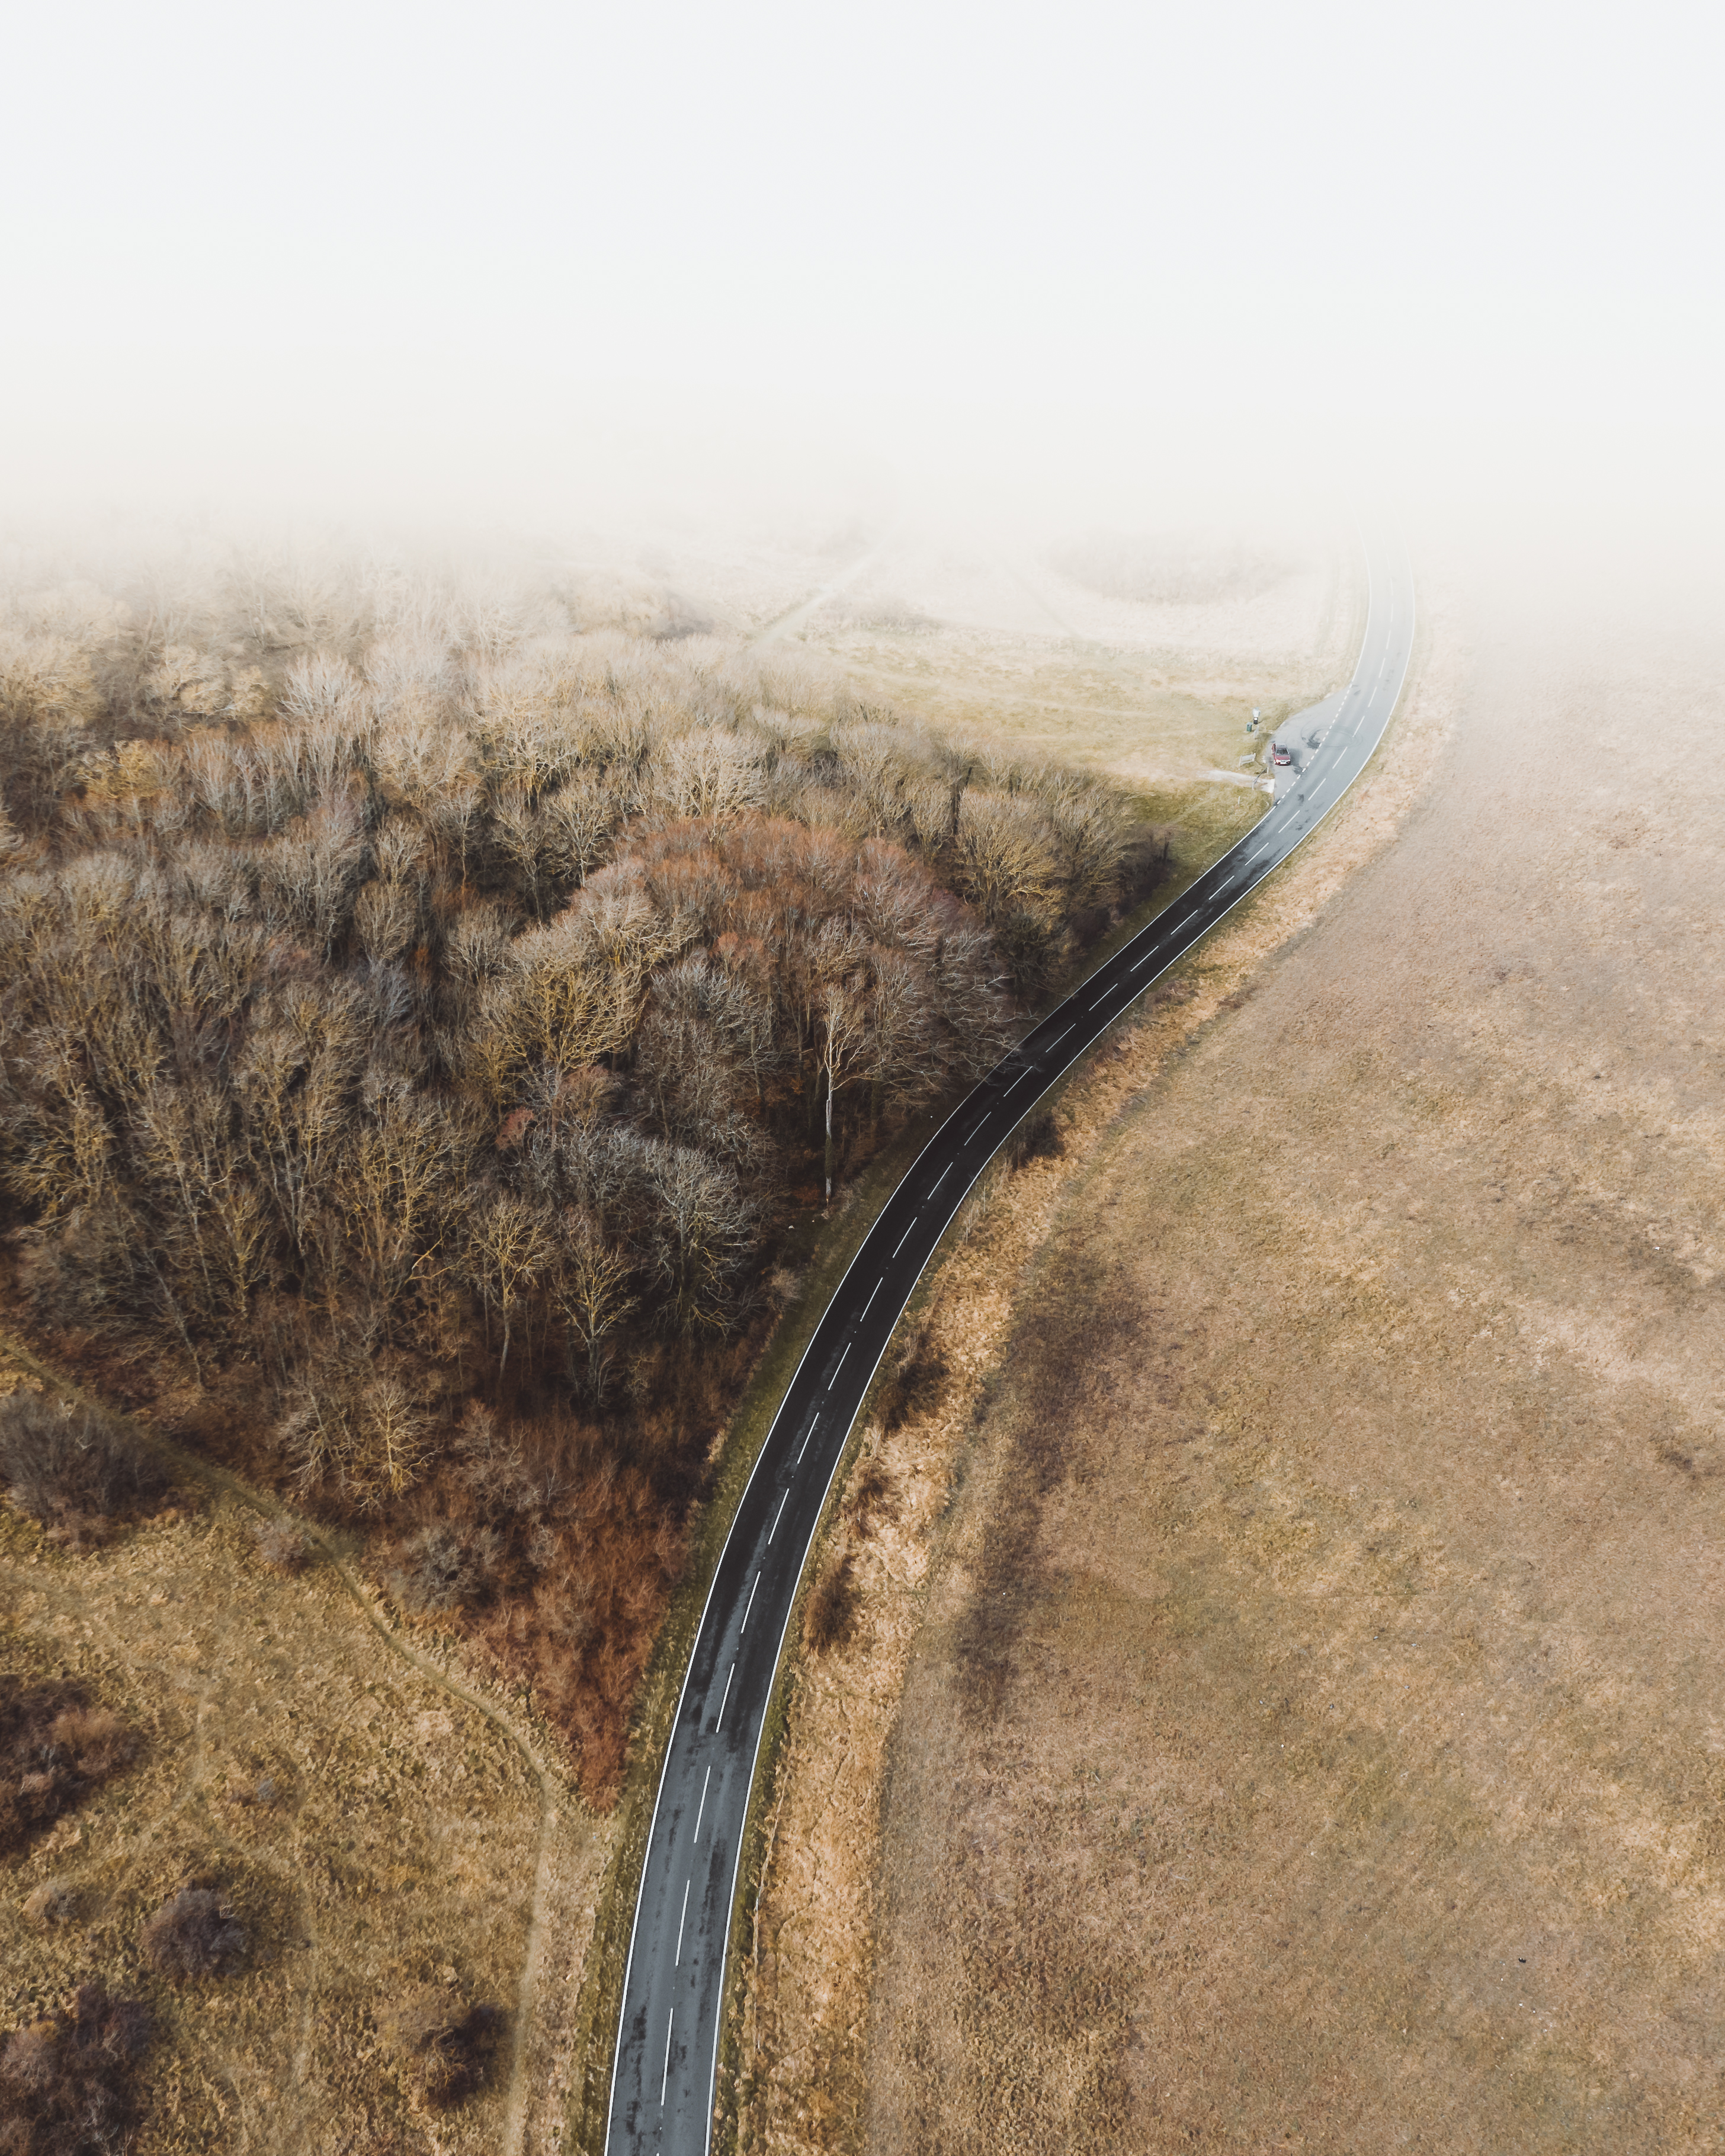 Aerial Photography of Road Near Brown Field